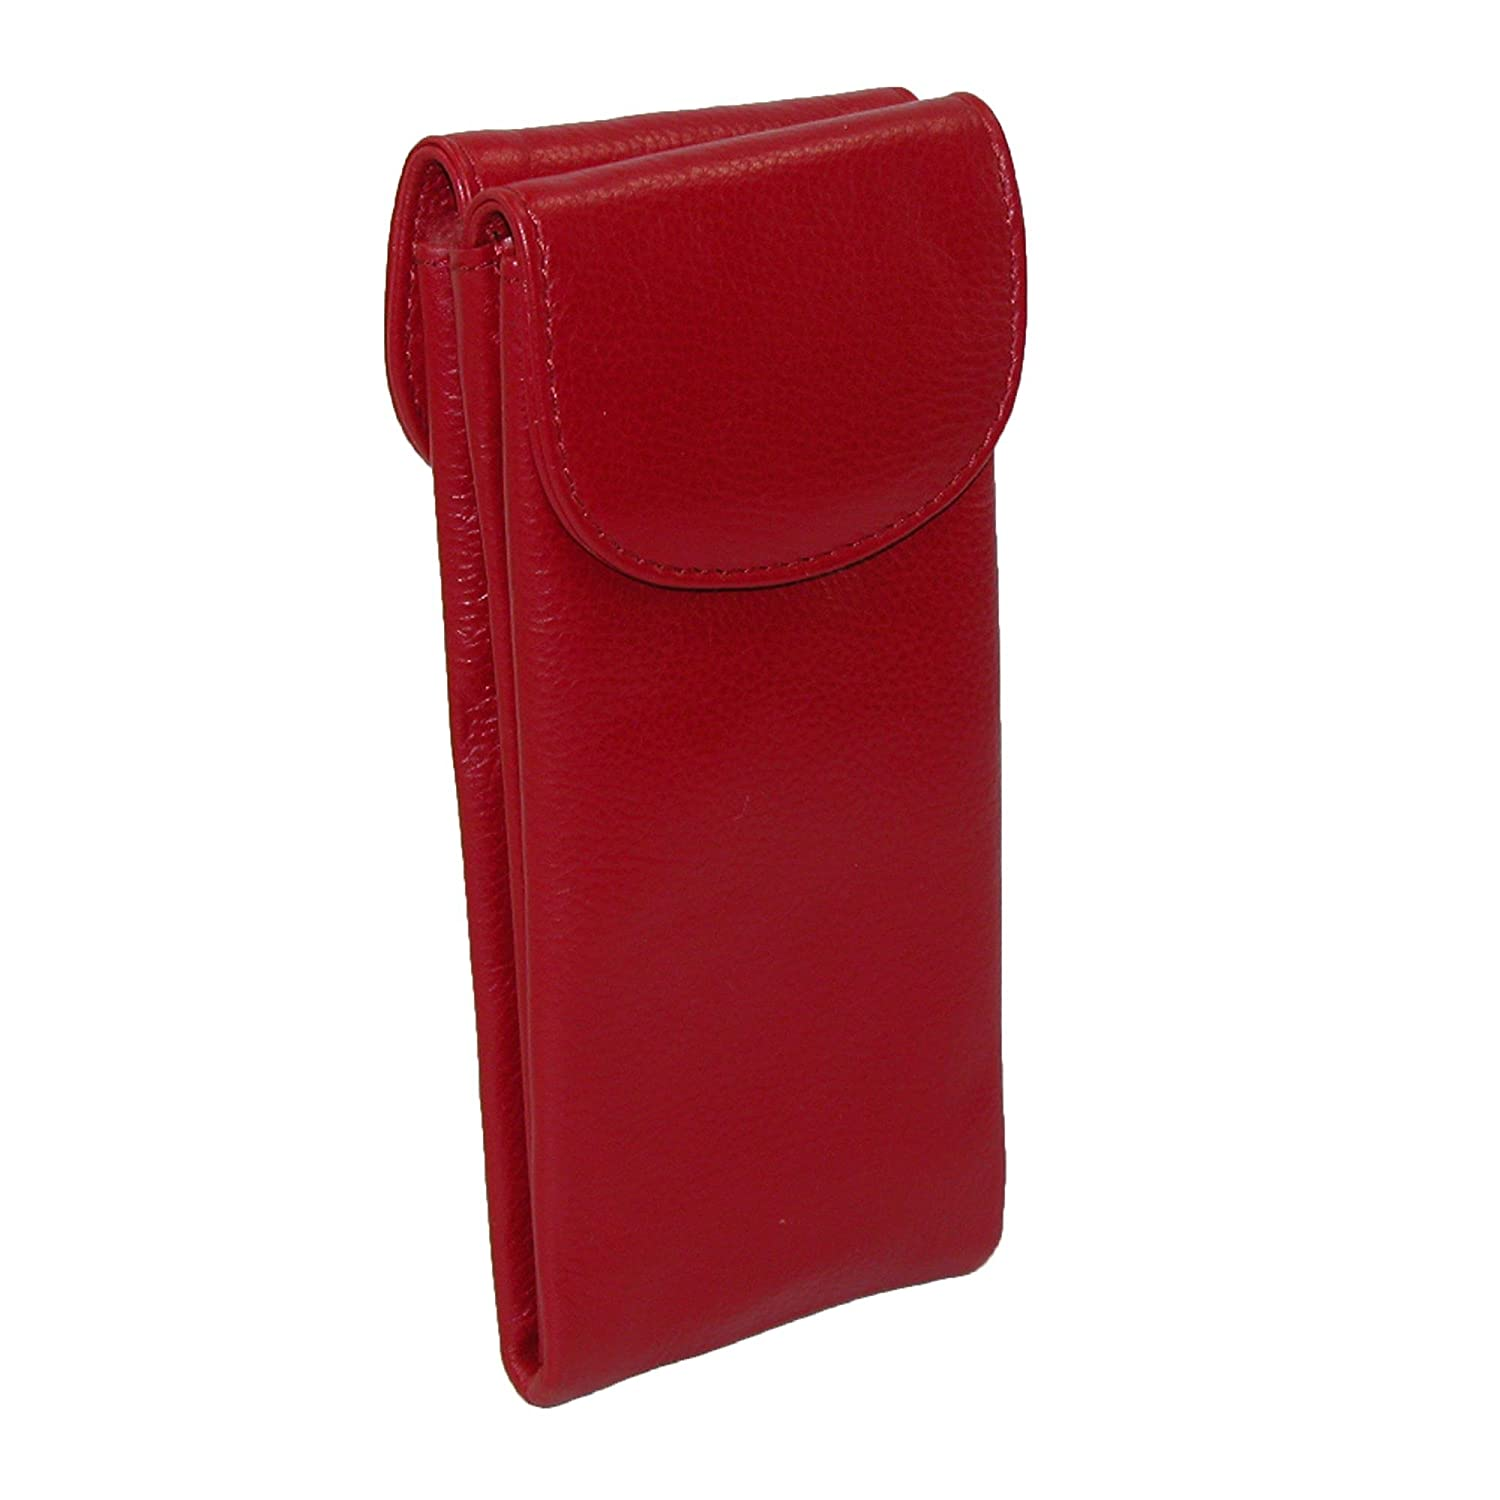 CTM Women's Leather Double Eyeglass Holder Case, Red IL-6470AZKIT-RED